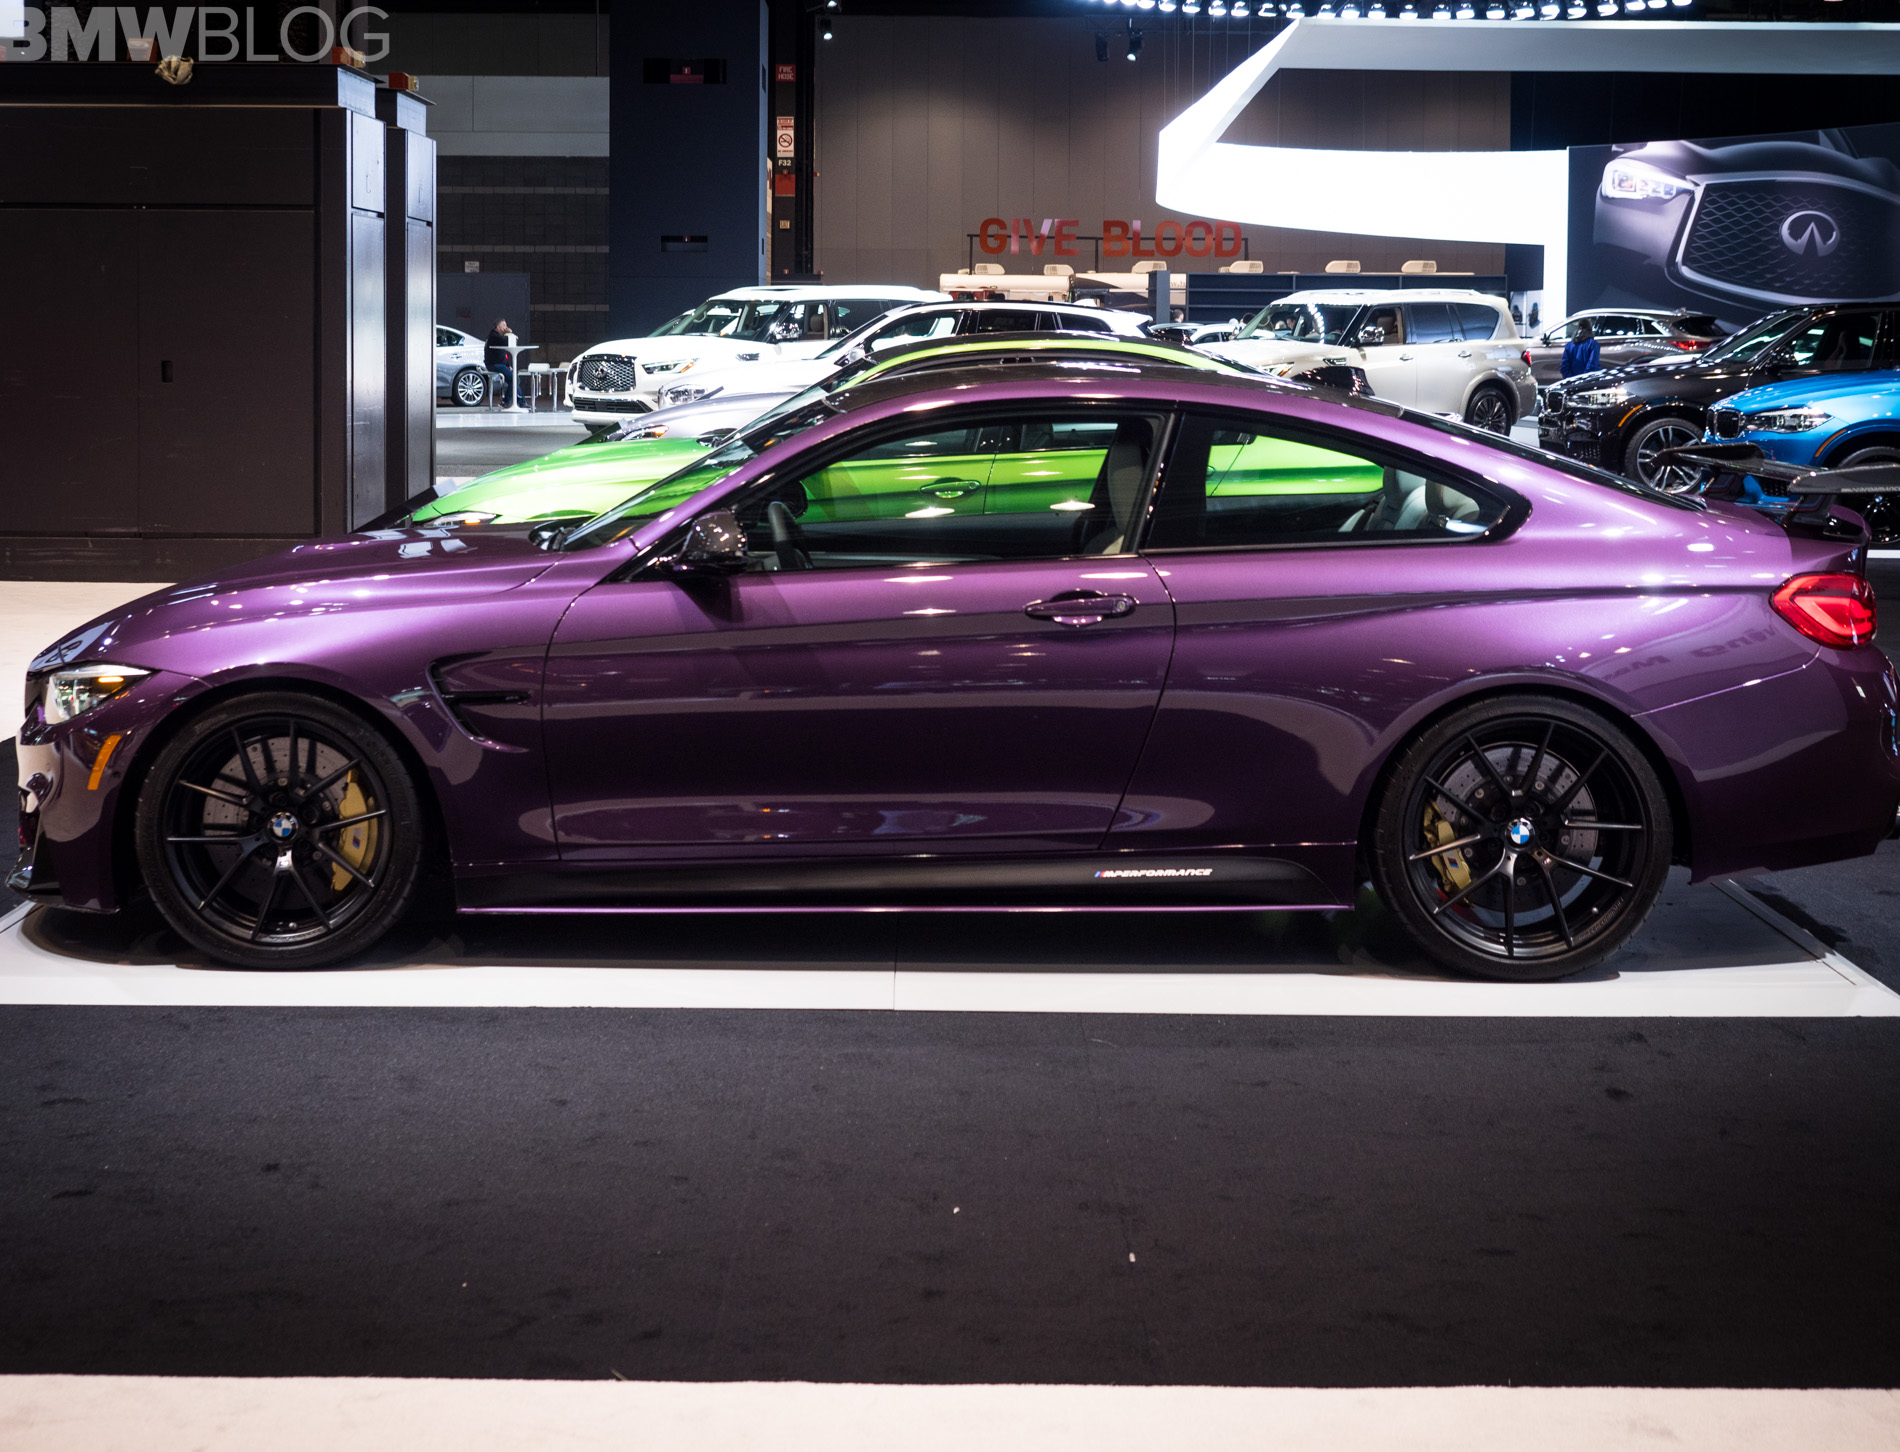 2018 Chicago Auto Show Bmw M4 In Purple Silk With M Performance Parts